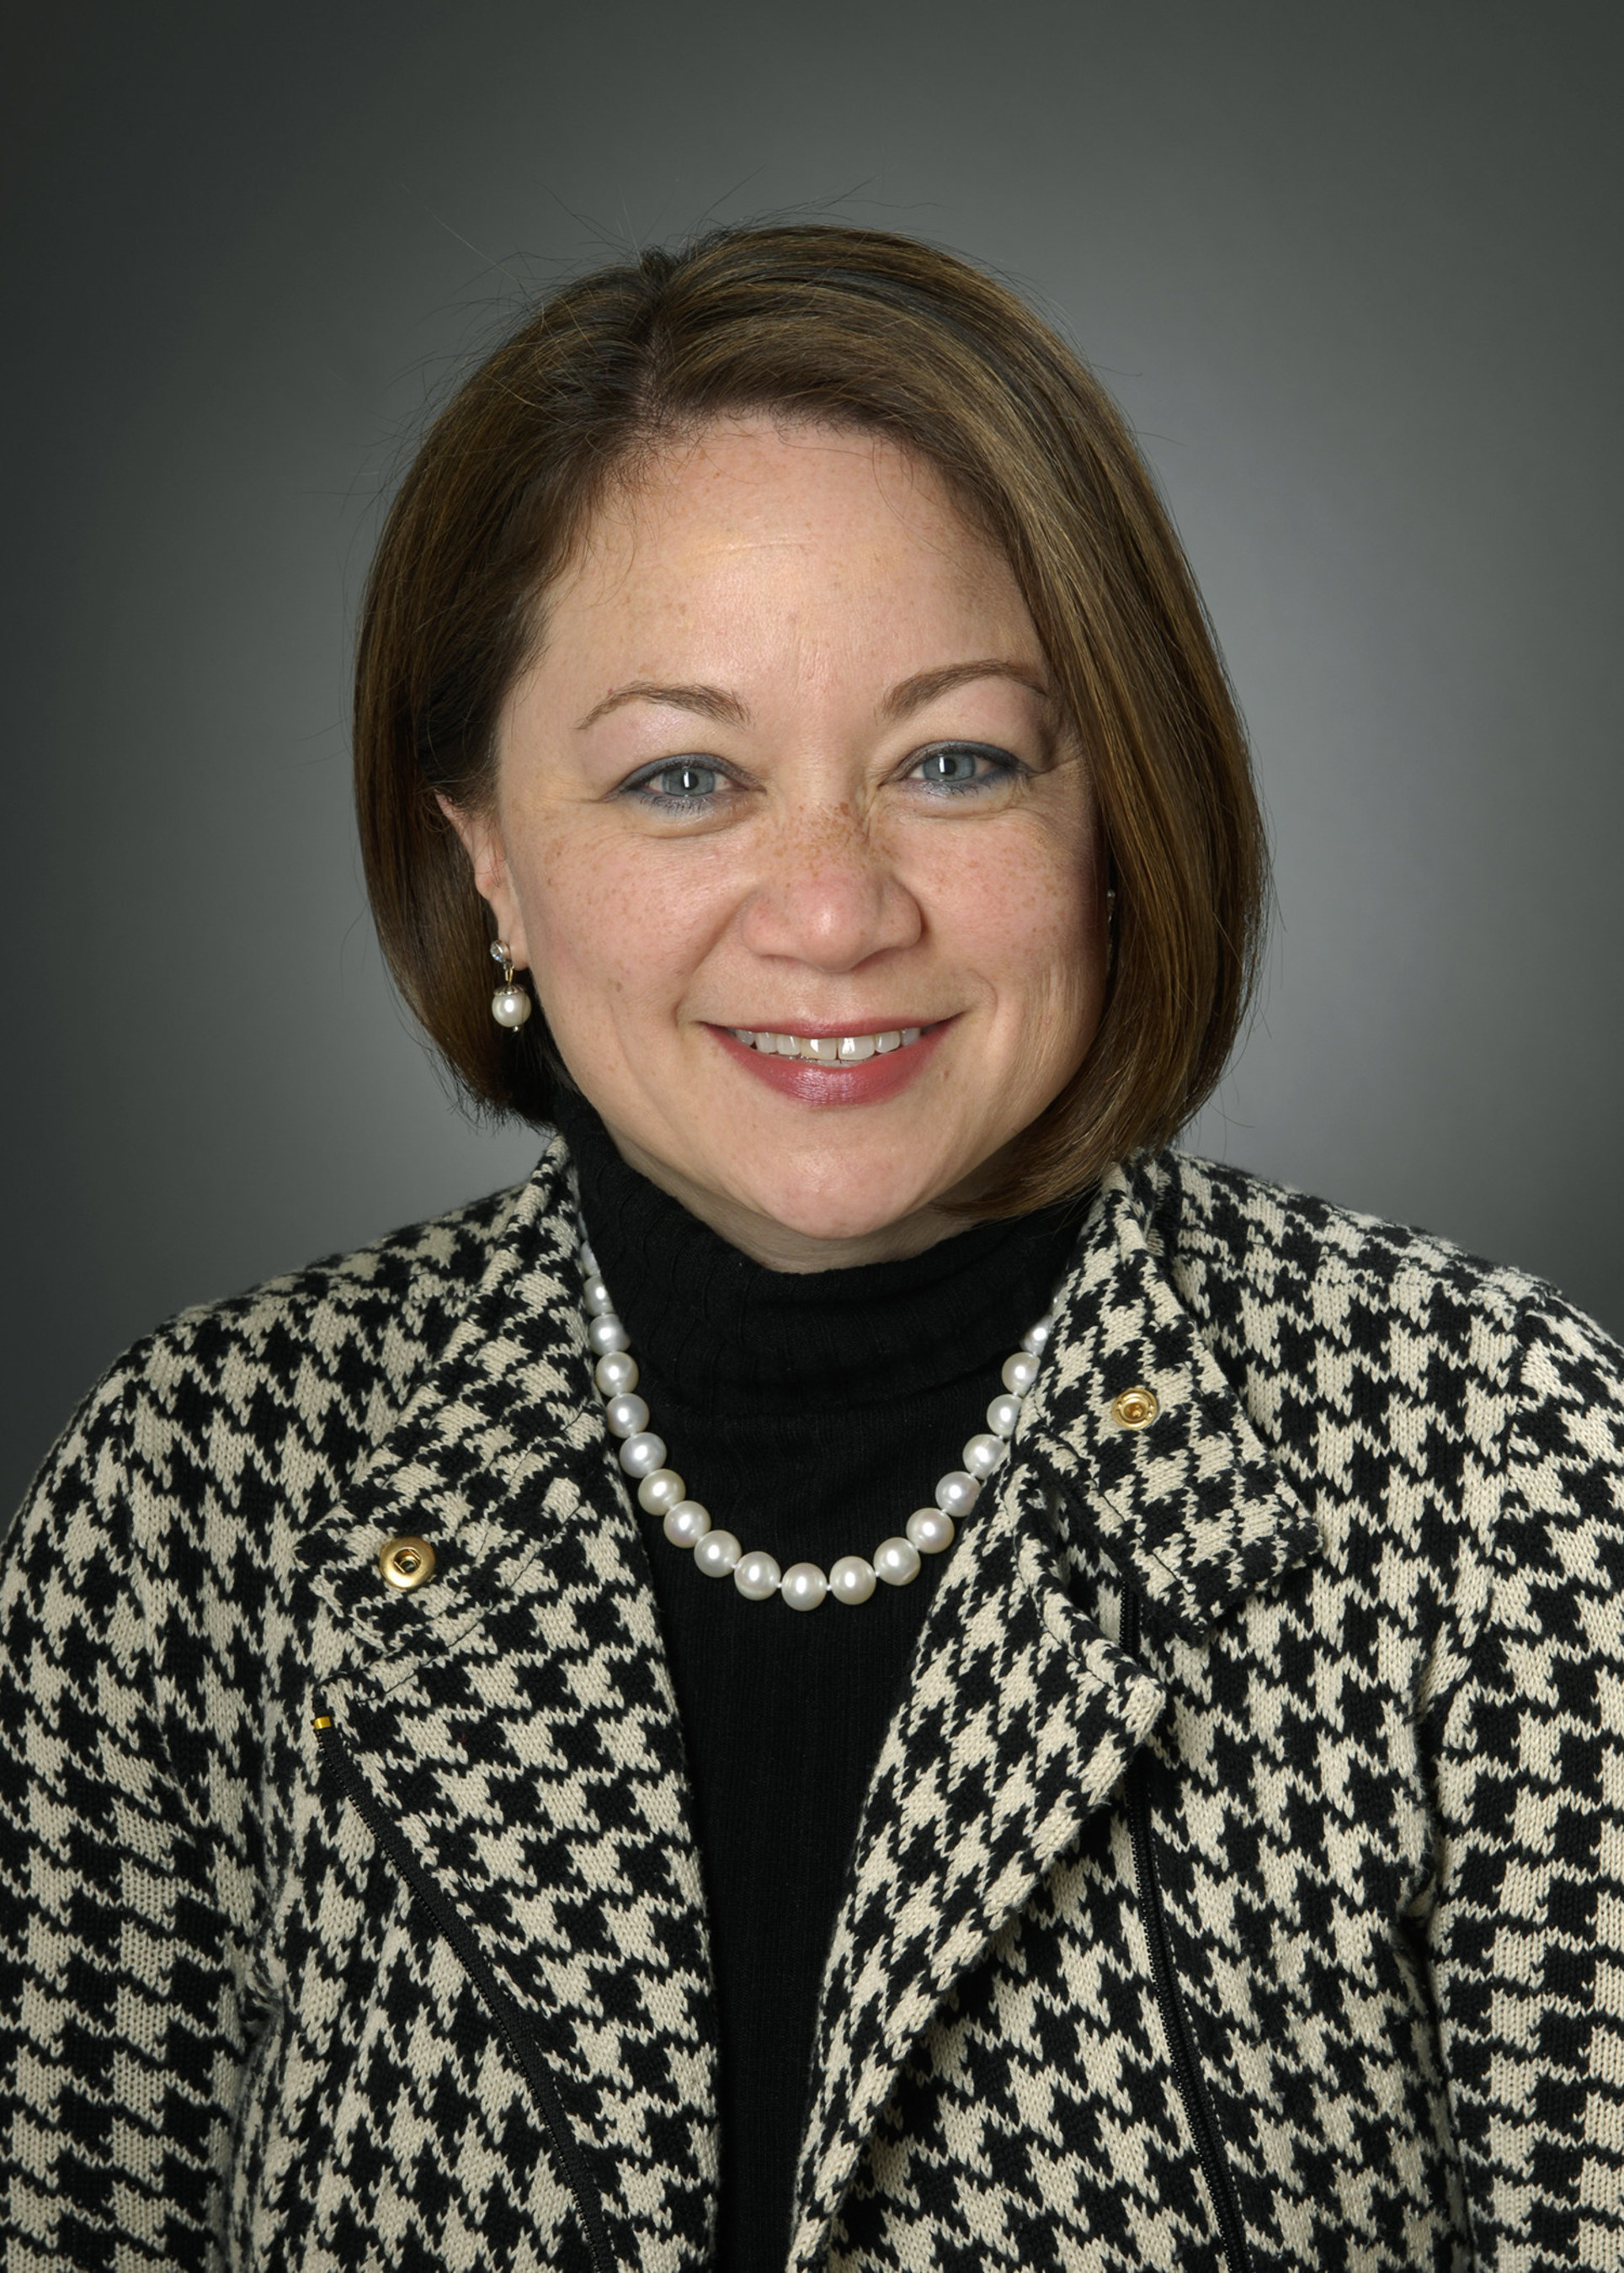 Ball names Manette Snow as vice president, diversity and inclusion. She is responsible for further developing ...